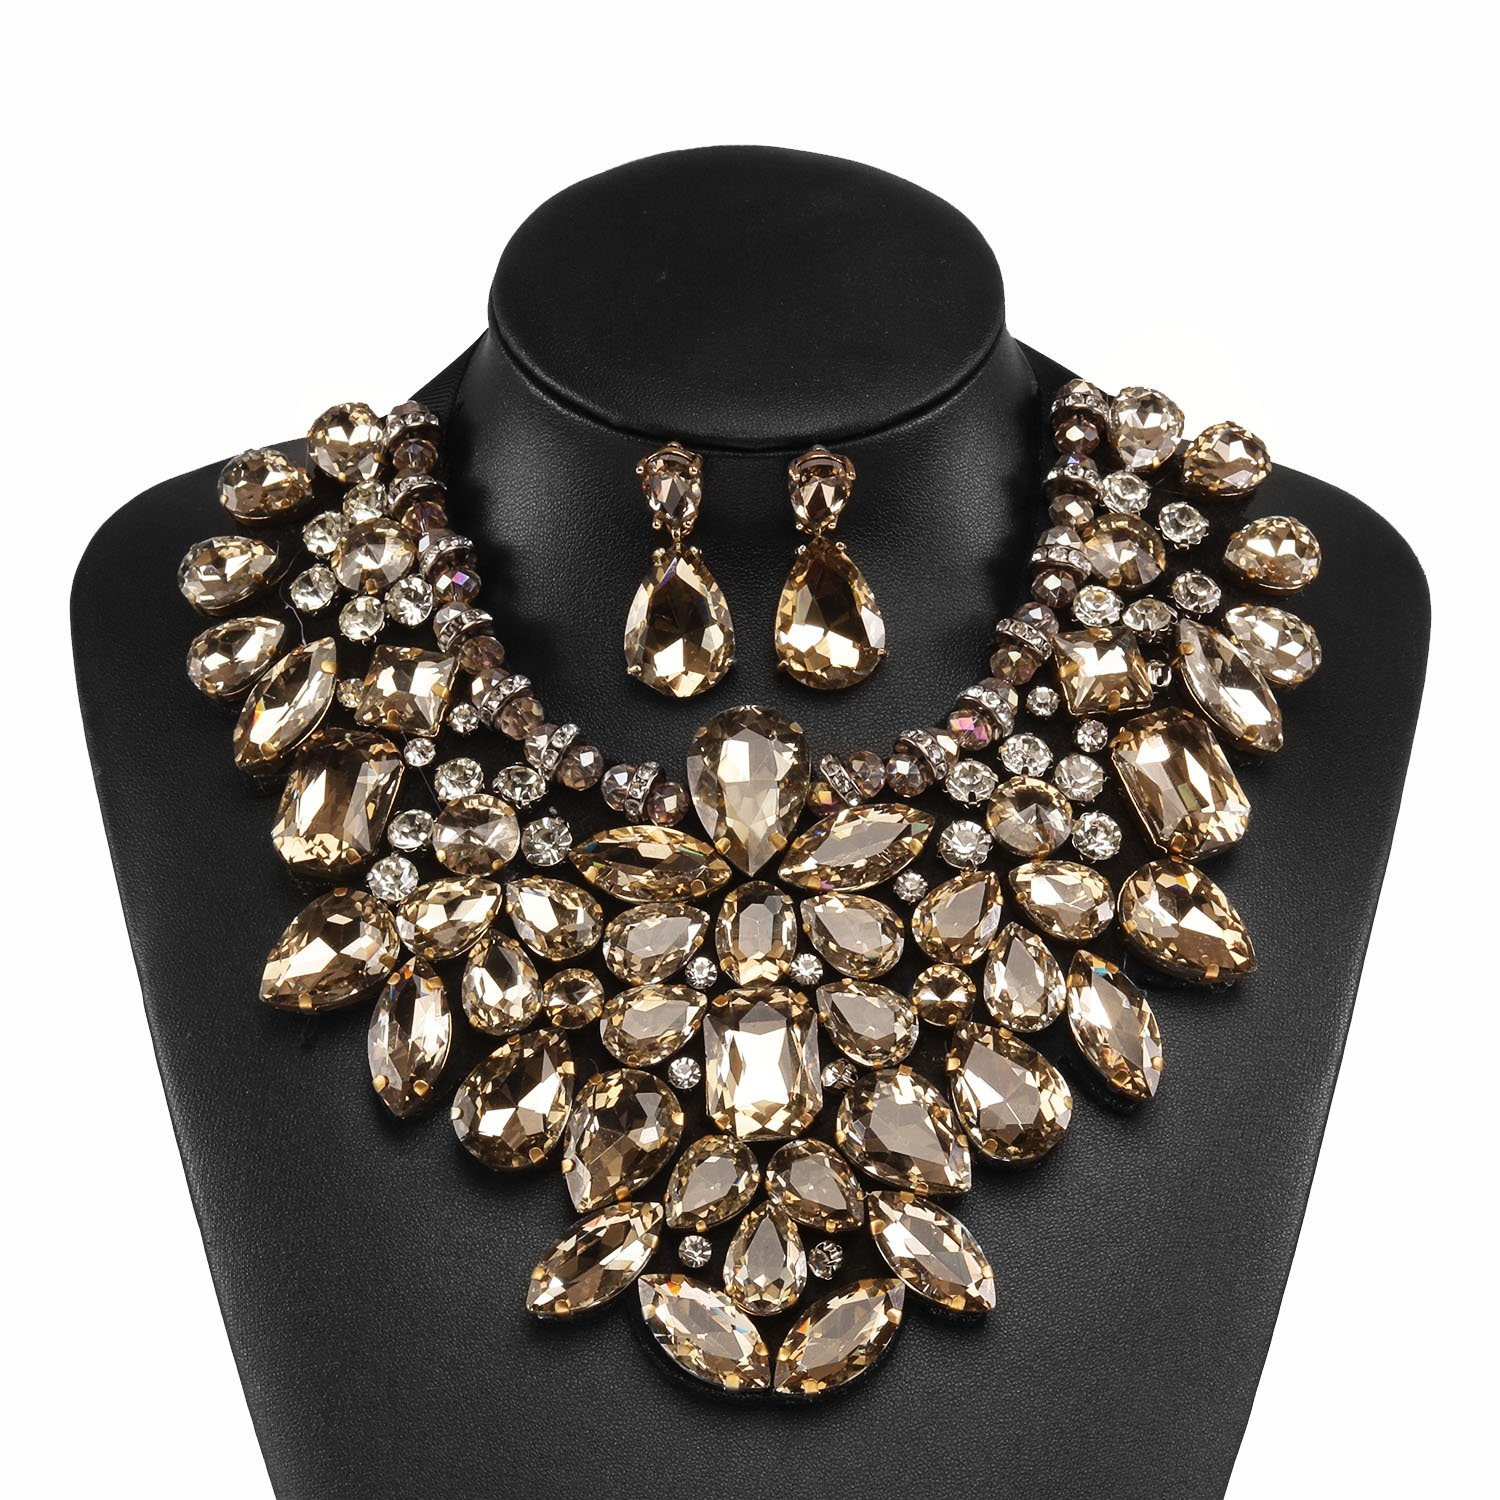 Holylove Champagne Costume Statement Necklace with Earrings for Women Jewelry Fashion Necklace 1 Set with Gift Box-HLN8455E-Champagne